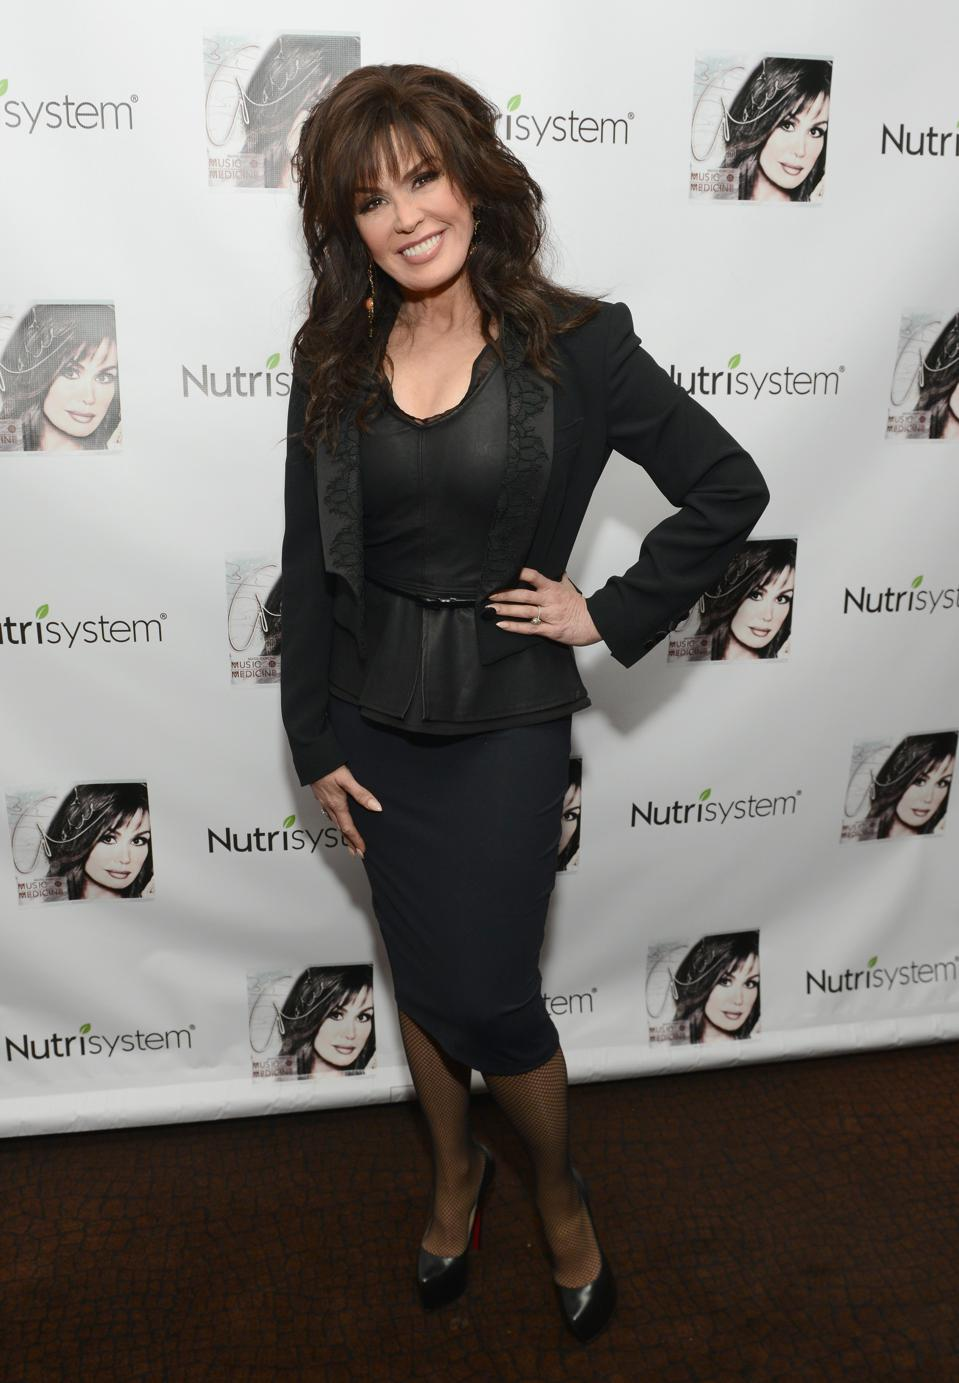 Nutrisystem worked with celebrities like Marie Osmond, and Legion Partners successfully intervened to give the company a digital overhaul, which led to them being acquired for $1.3 billion.